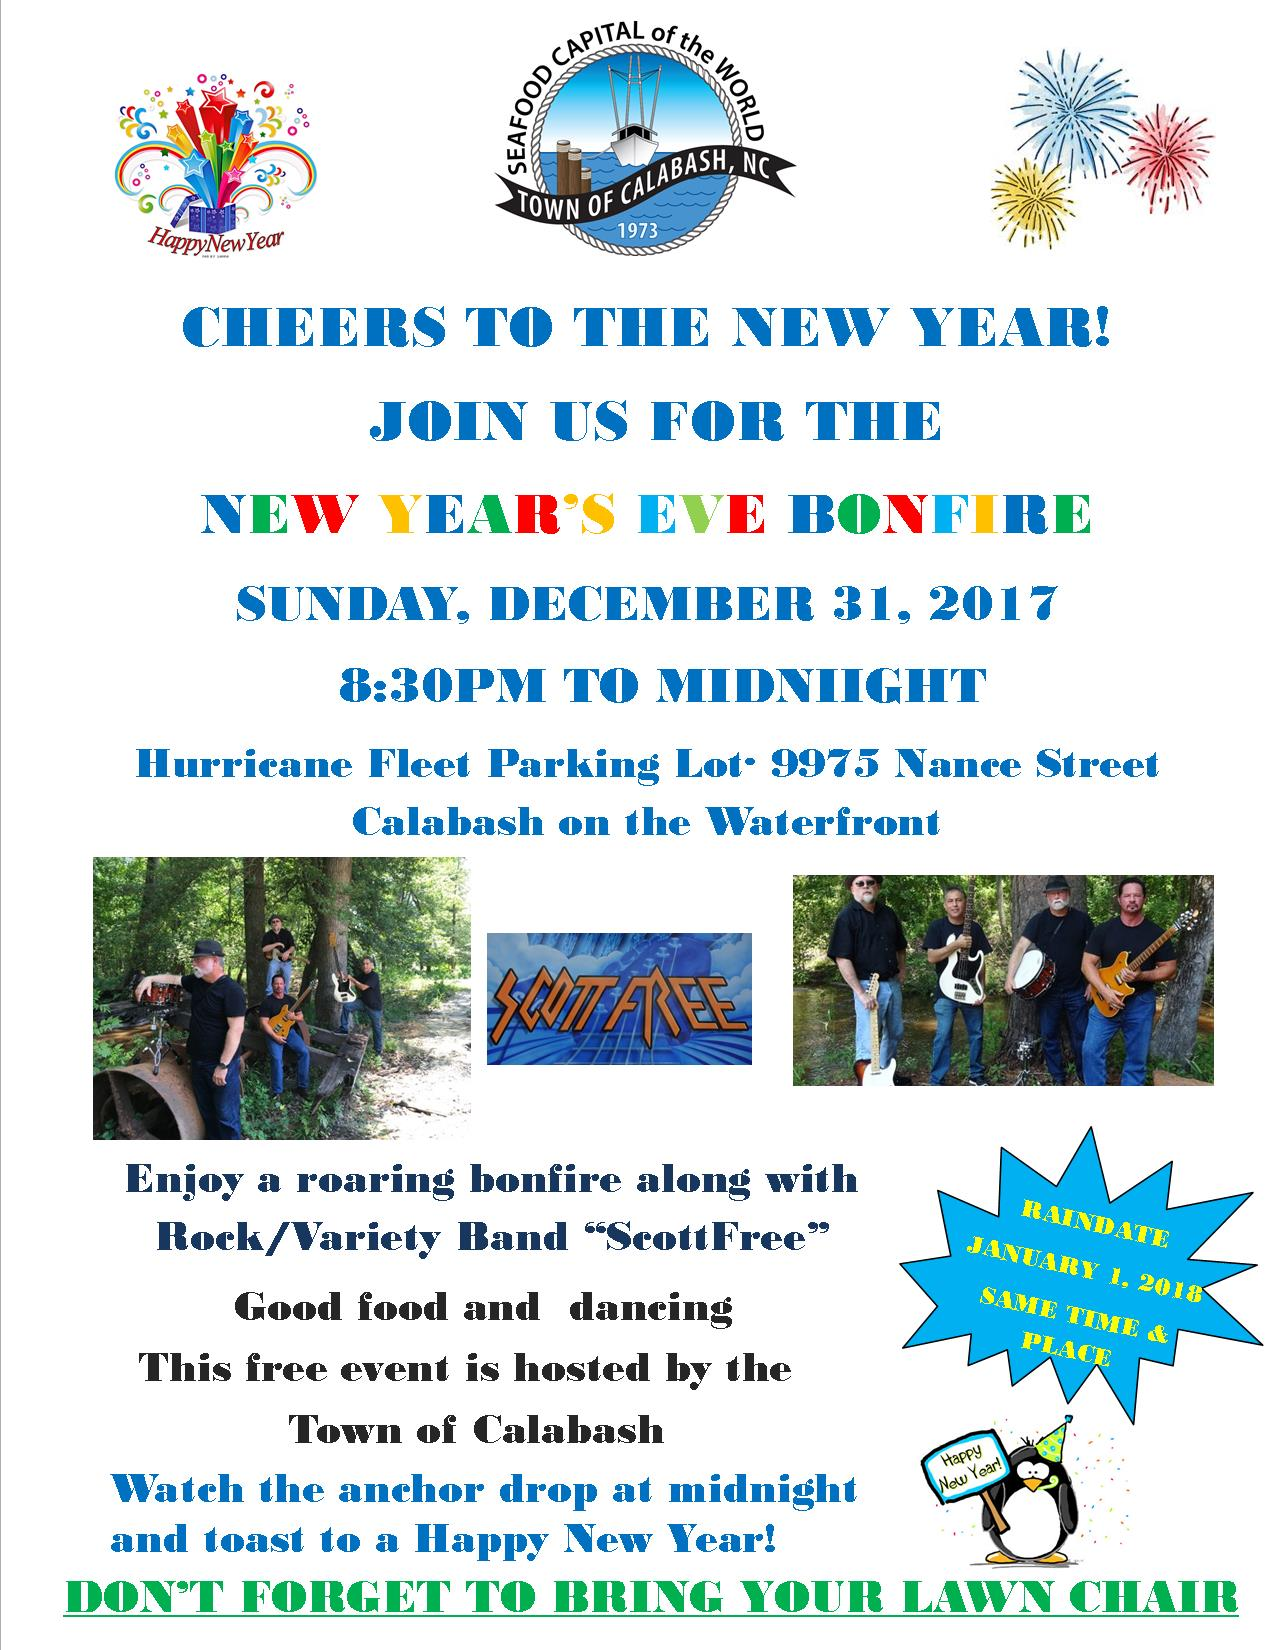 New Years Eve Bonfire 2017 flyer